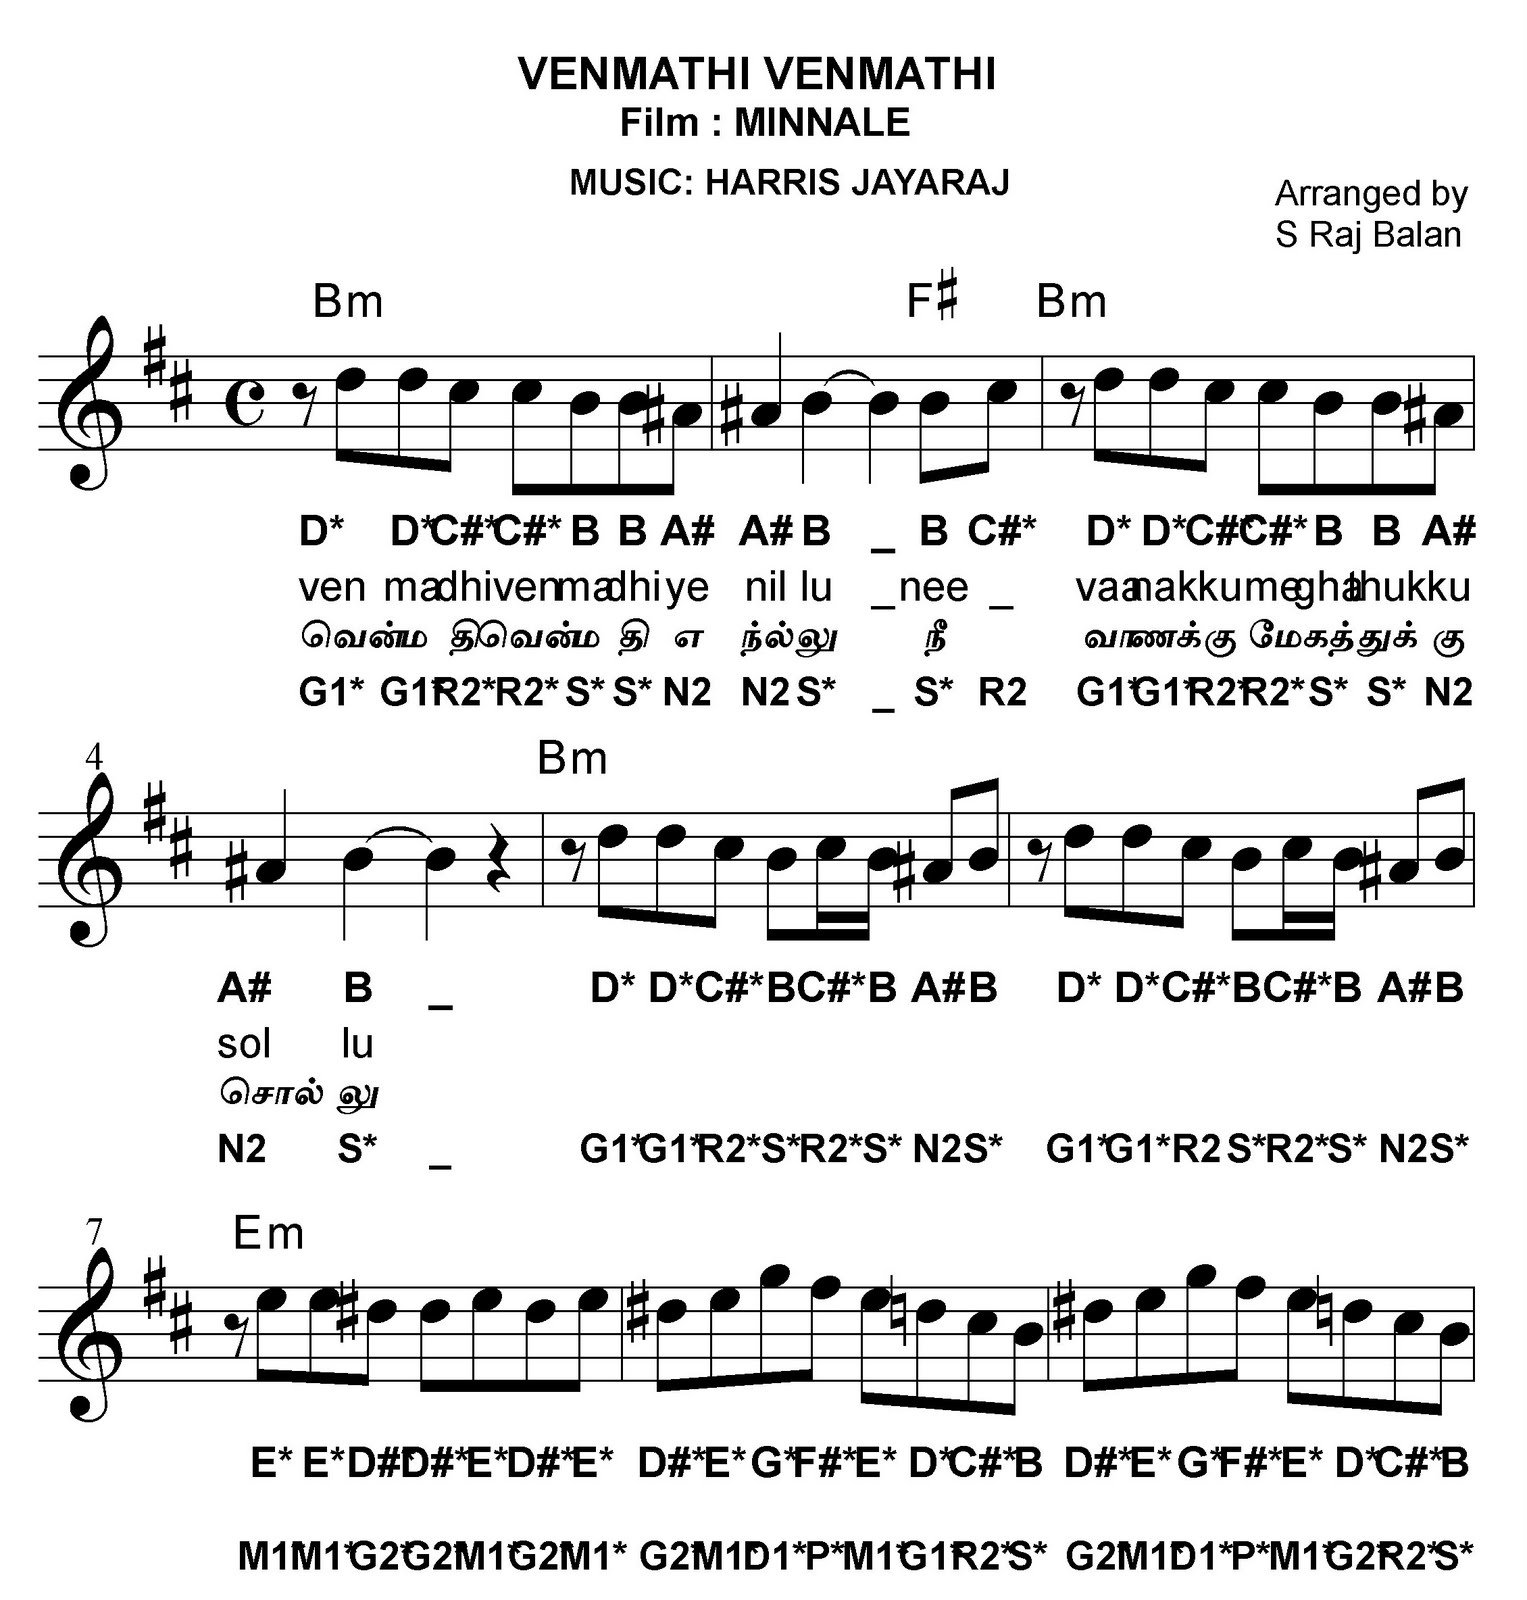 Tamil Song Piano Notes Venmathi Venmathi Minnale Piano Keyboard Notes For Hindi Songs Learn piano online at piano mint. bollywood sheet music